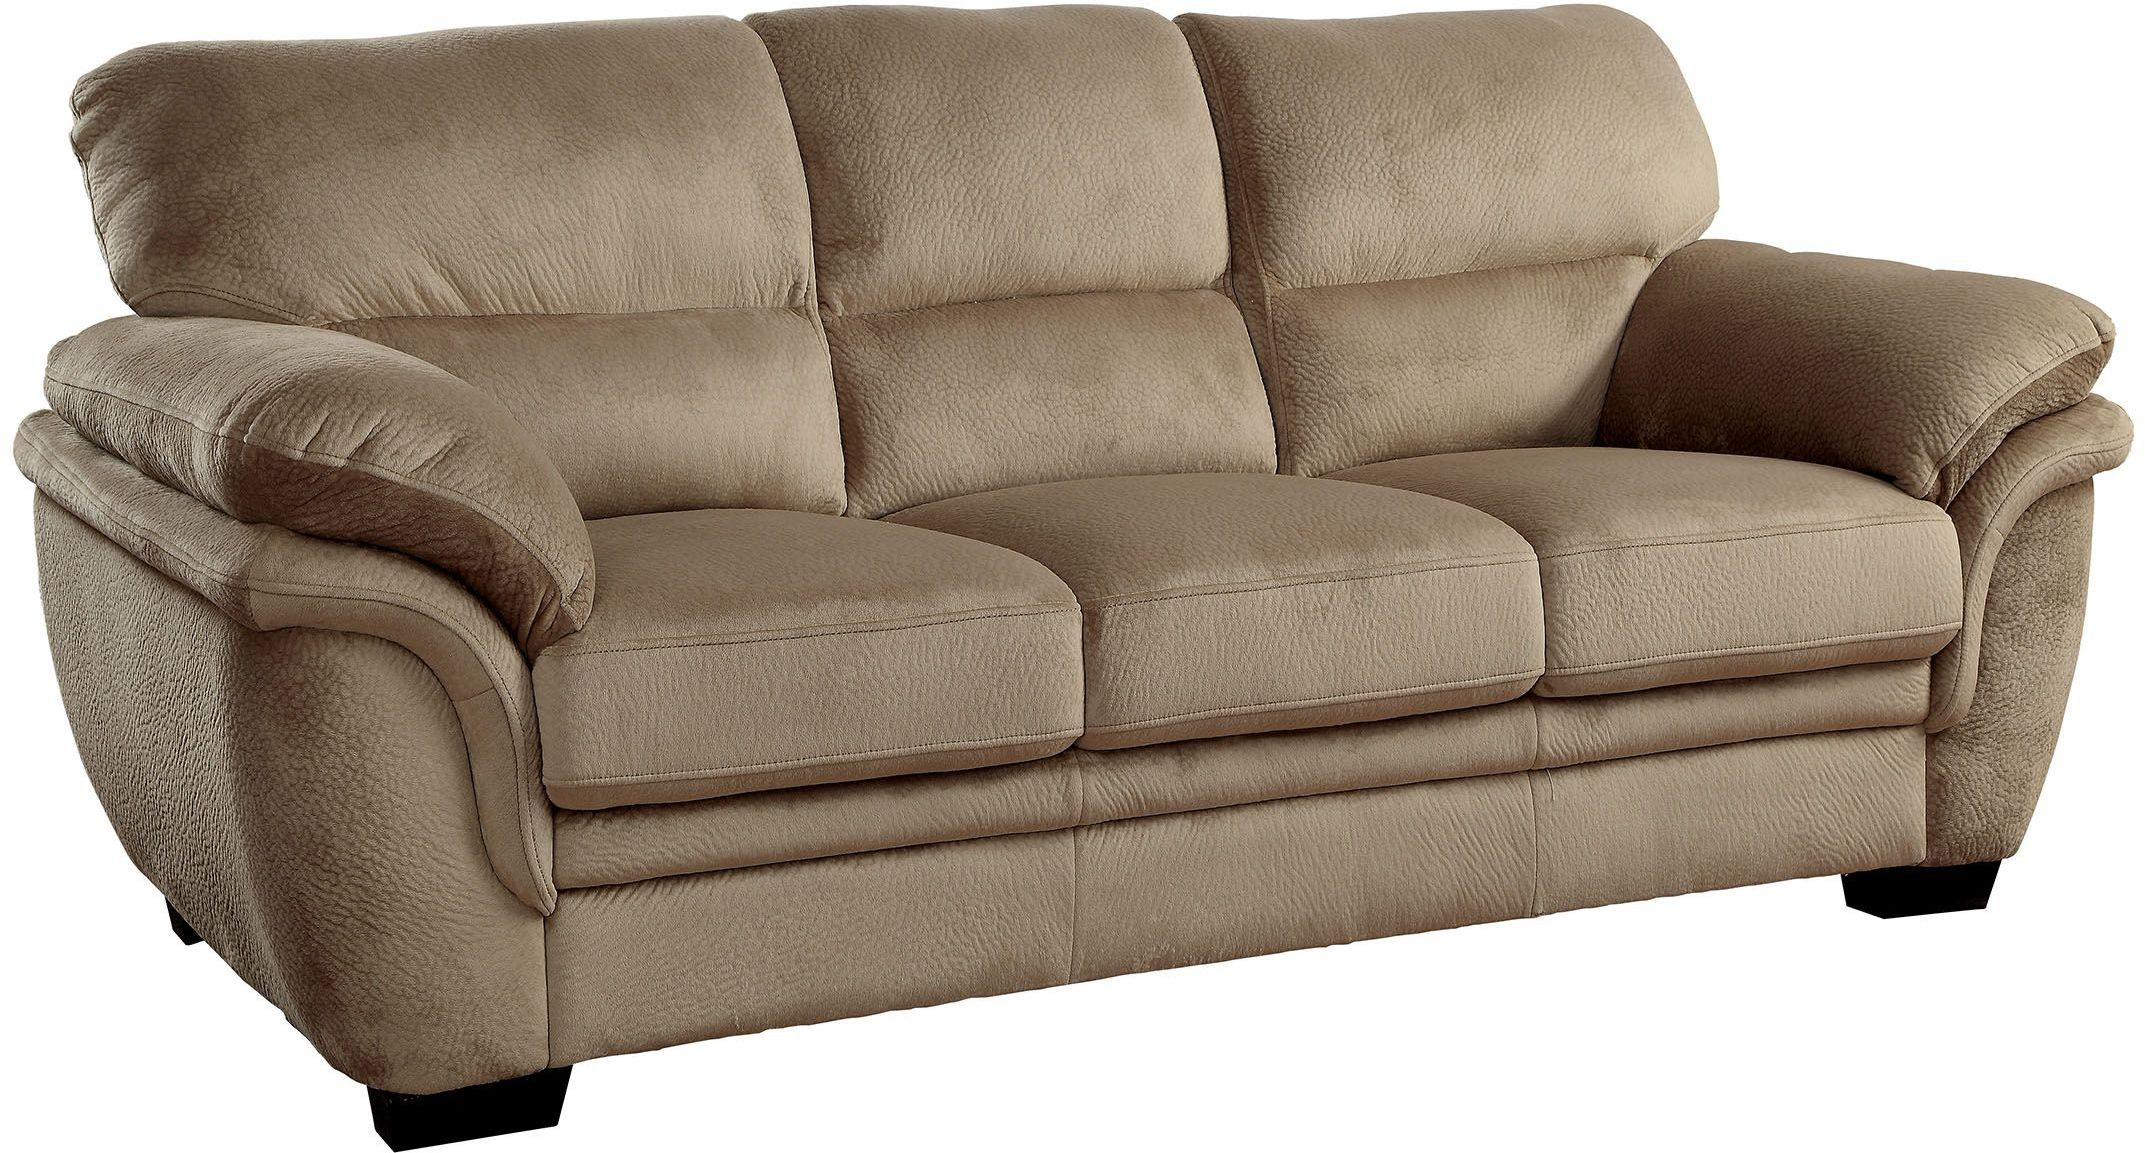 light brown sofa cheap two seater fabric jaya from furniture of america coleman